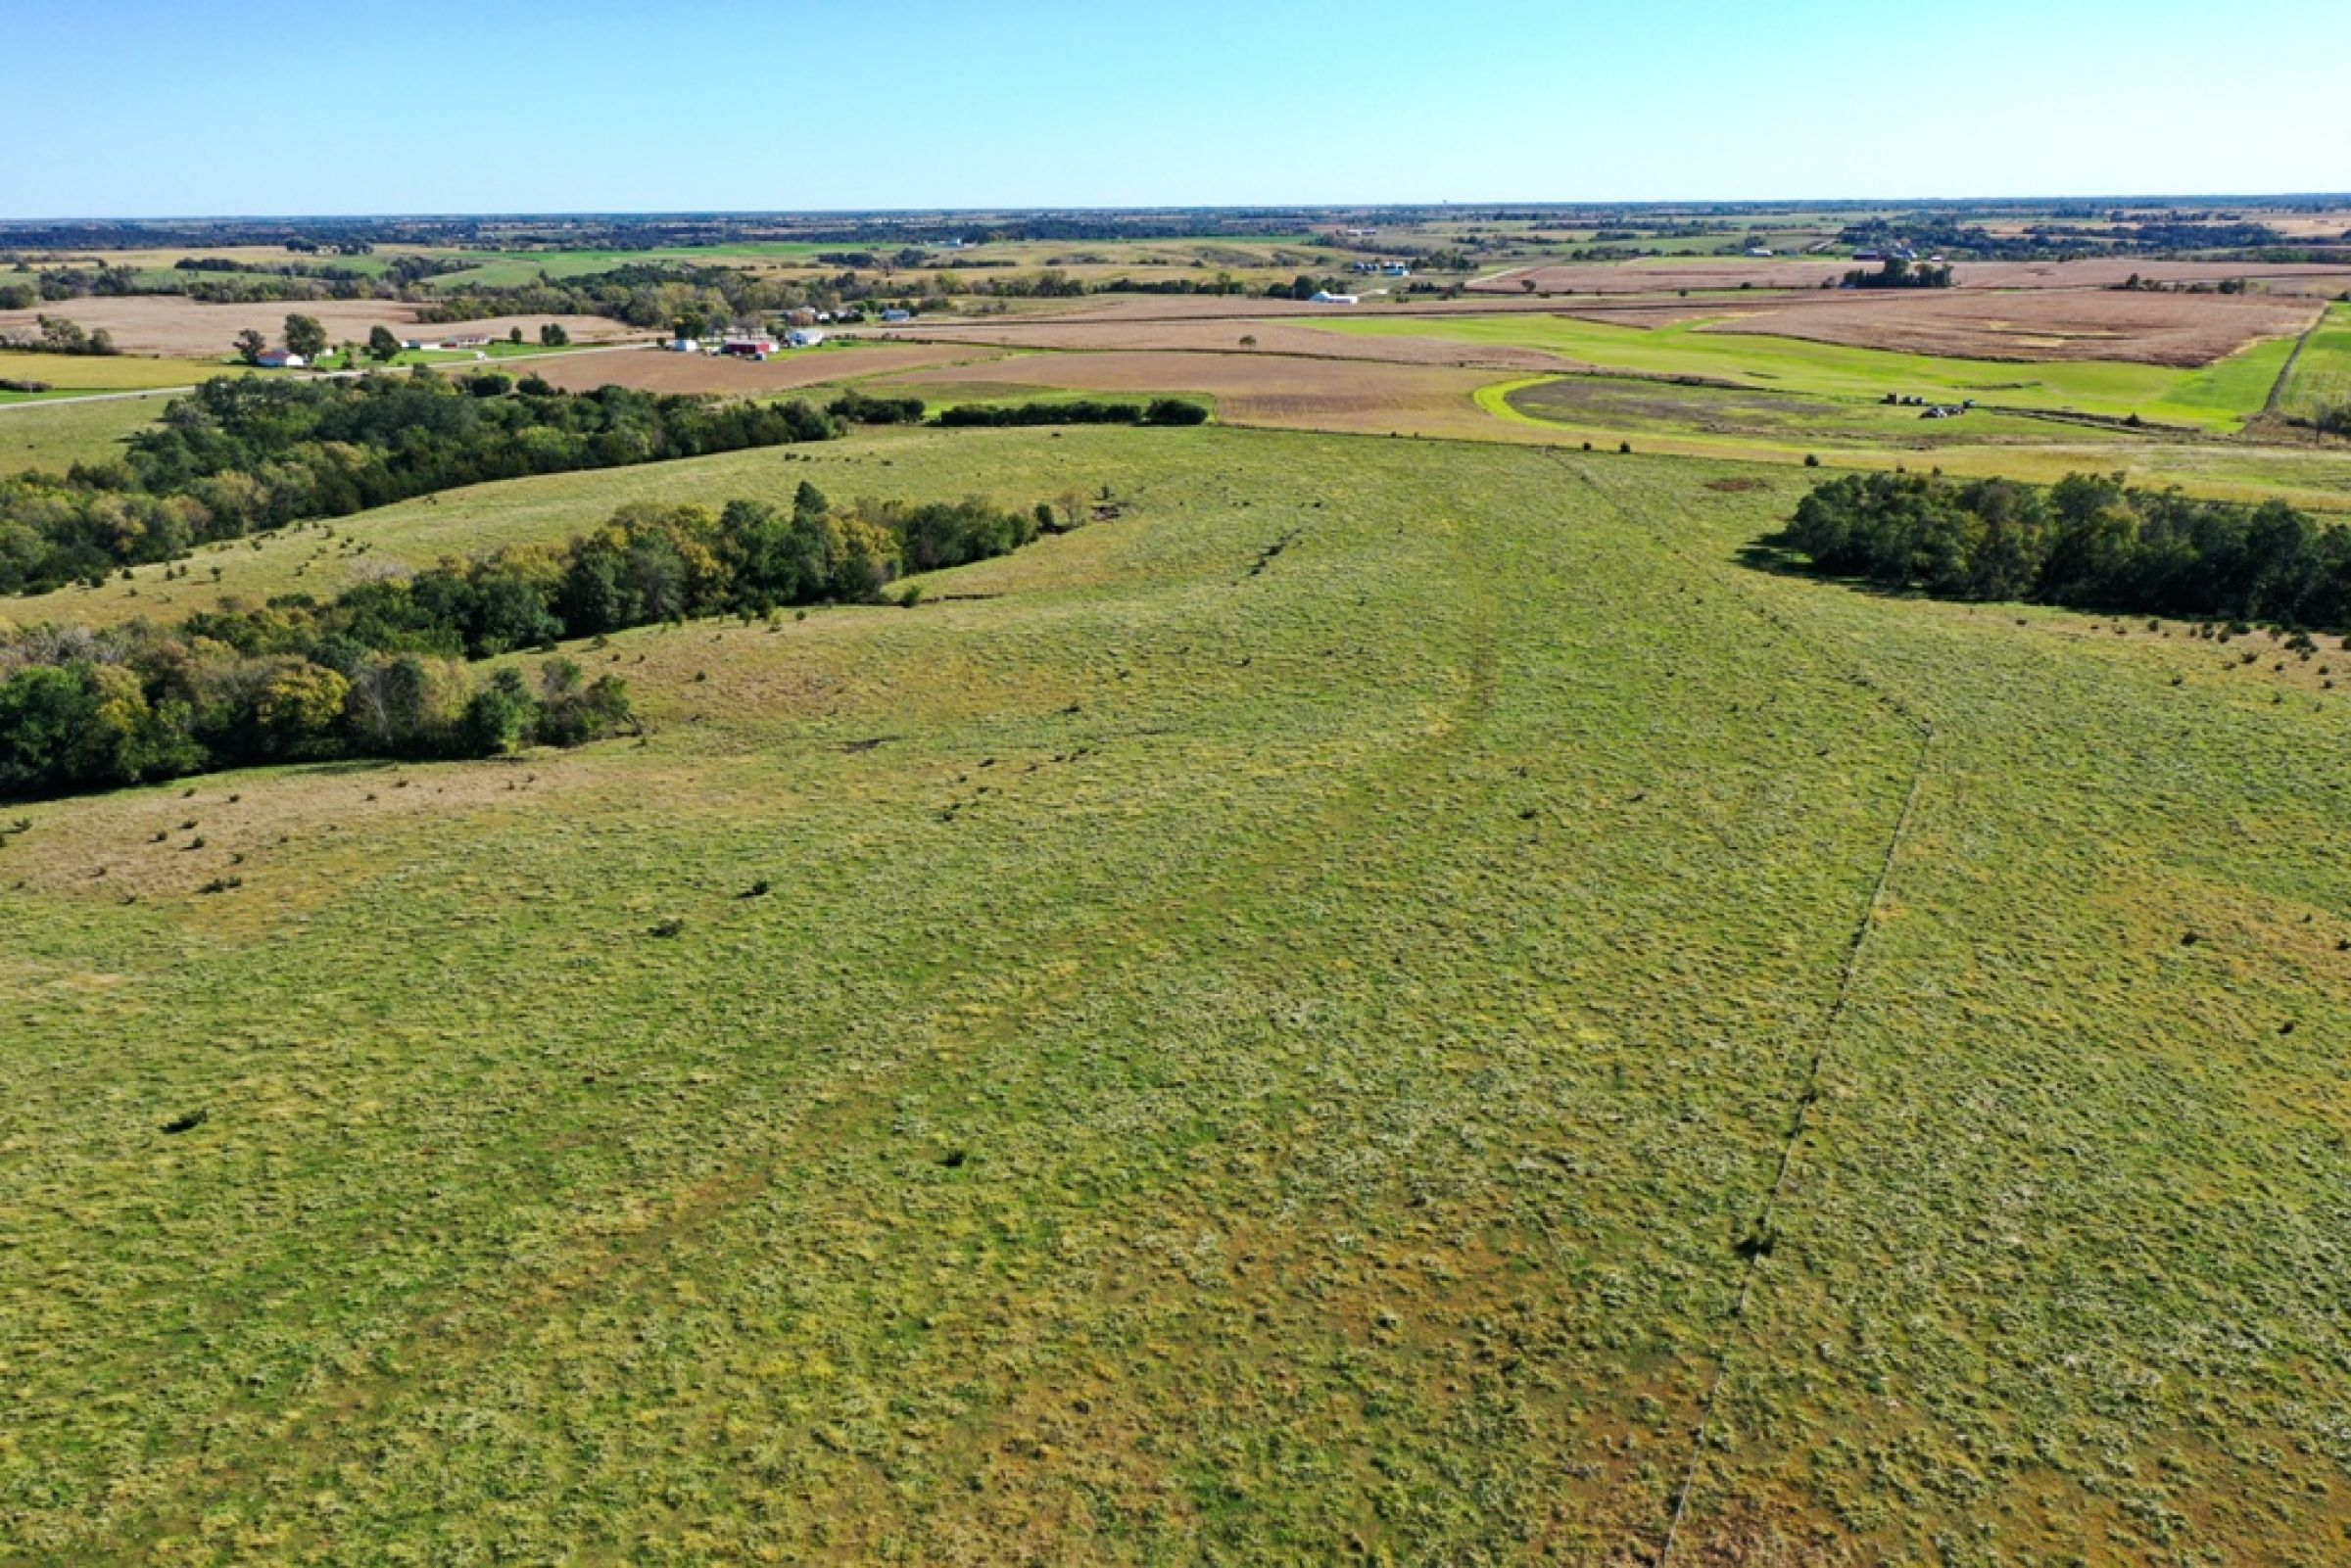 Peoples Company Land for Sale-Clarke County-000 Hwy. 69 Ave. Osceola, IA 50213